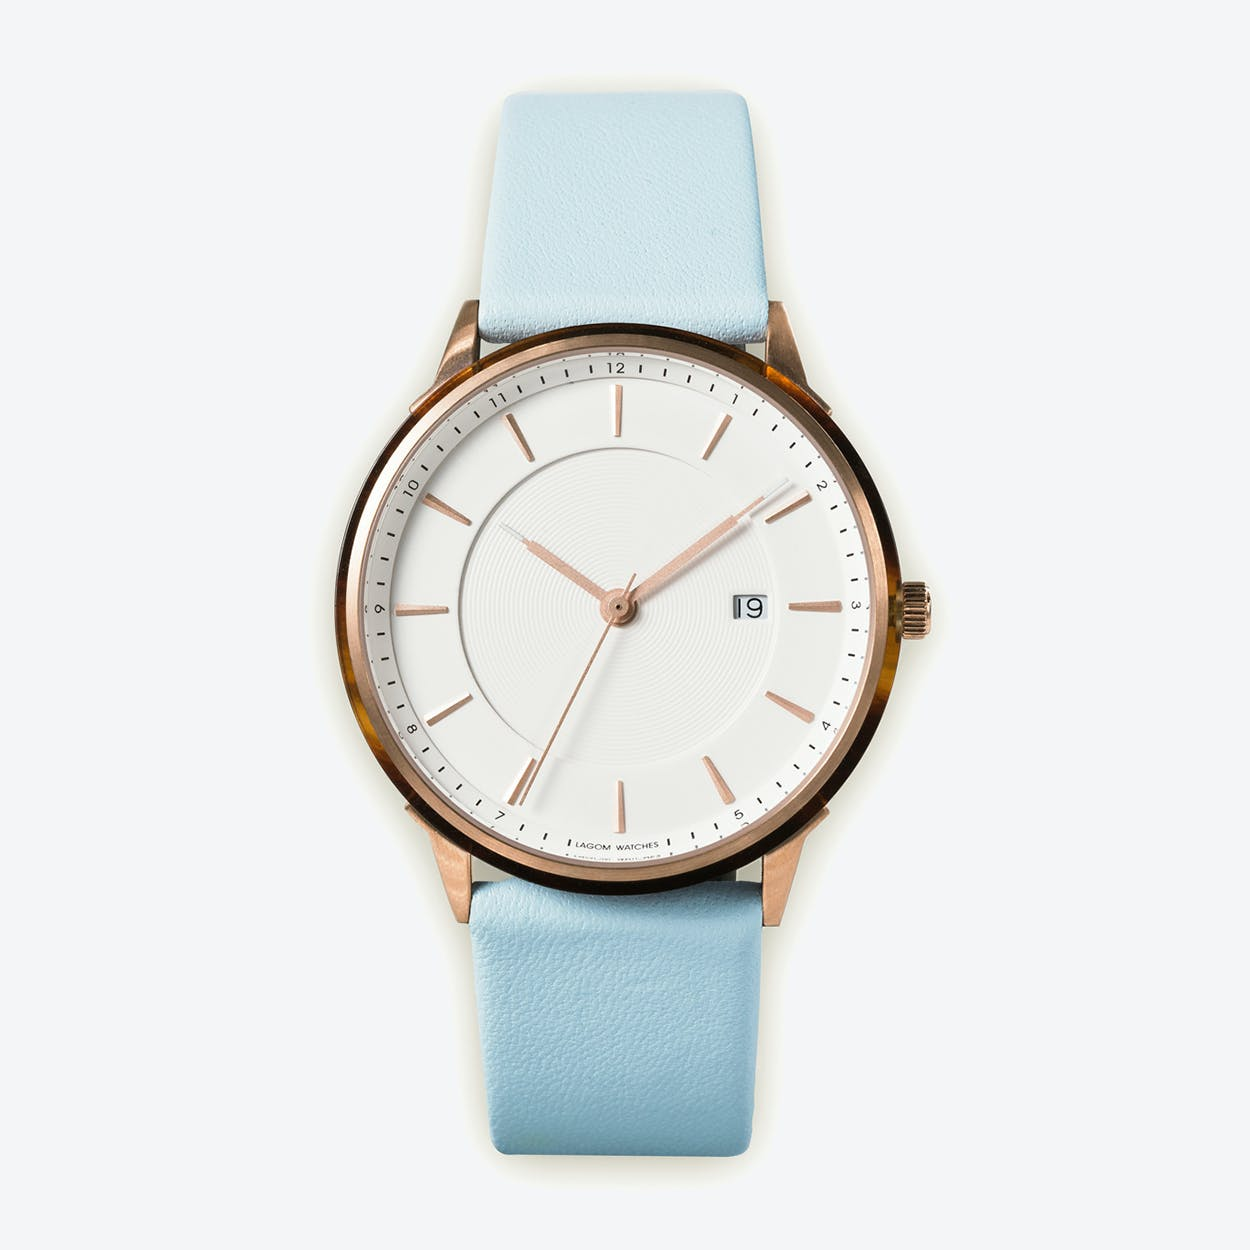 Leather Strap Rose Gold Watch En BÖrja Rose Gold Watch In Offwhite Face And Pale Blue Leather Strap